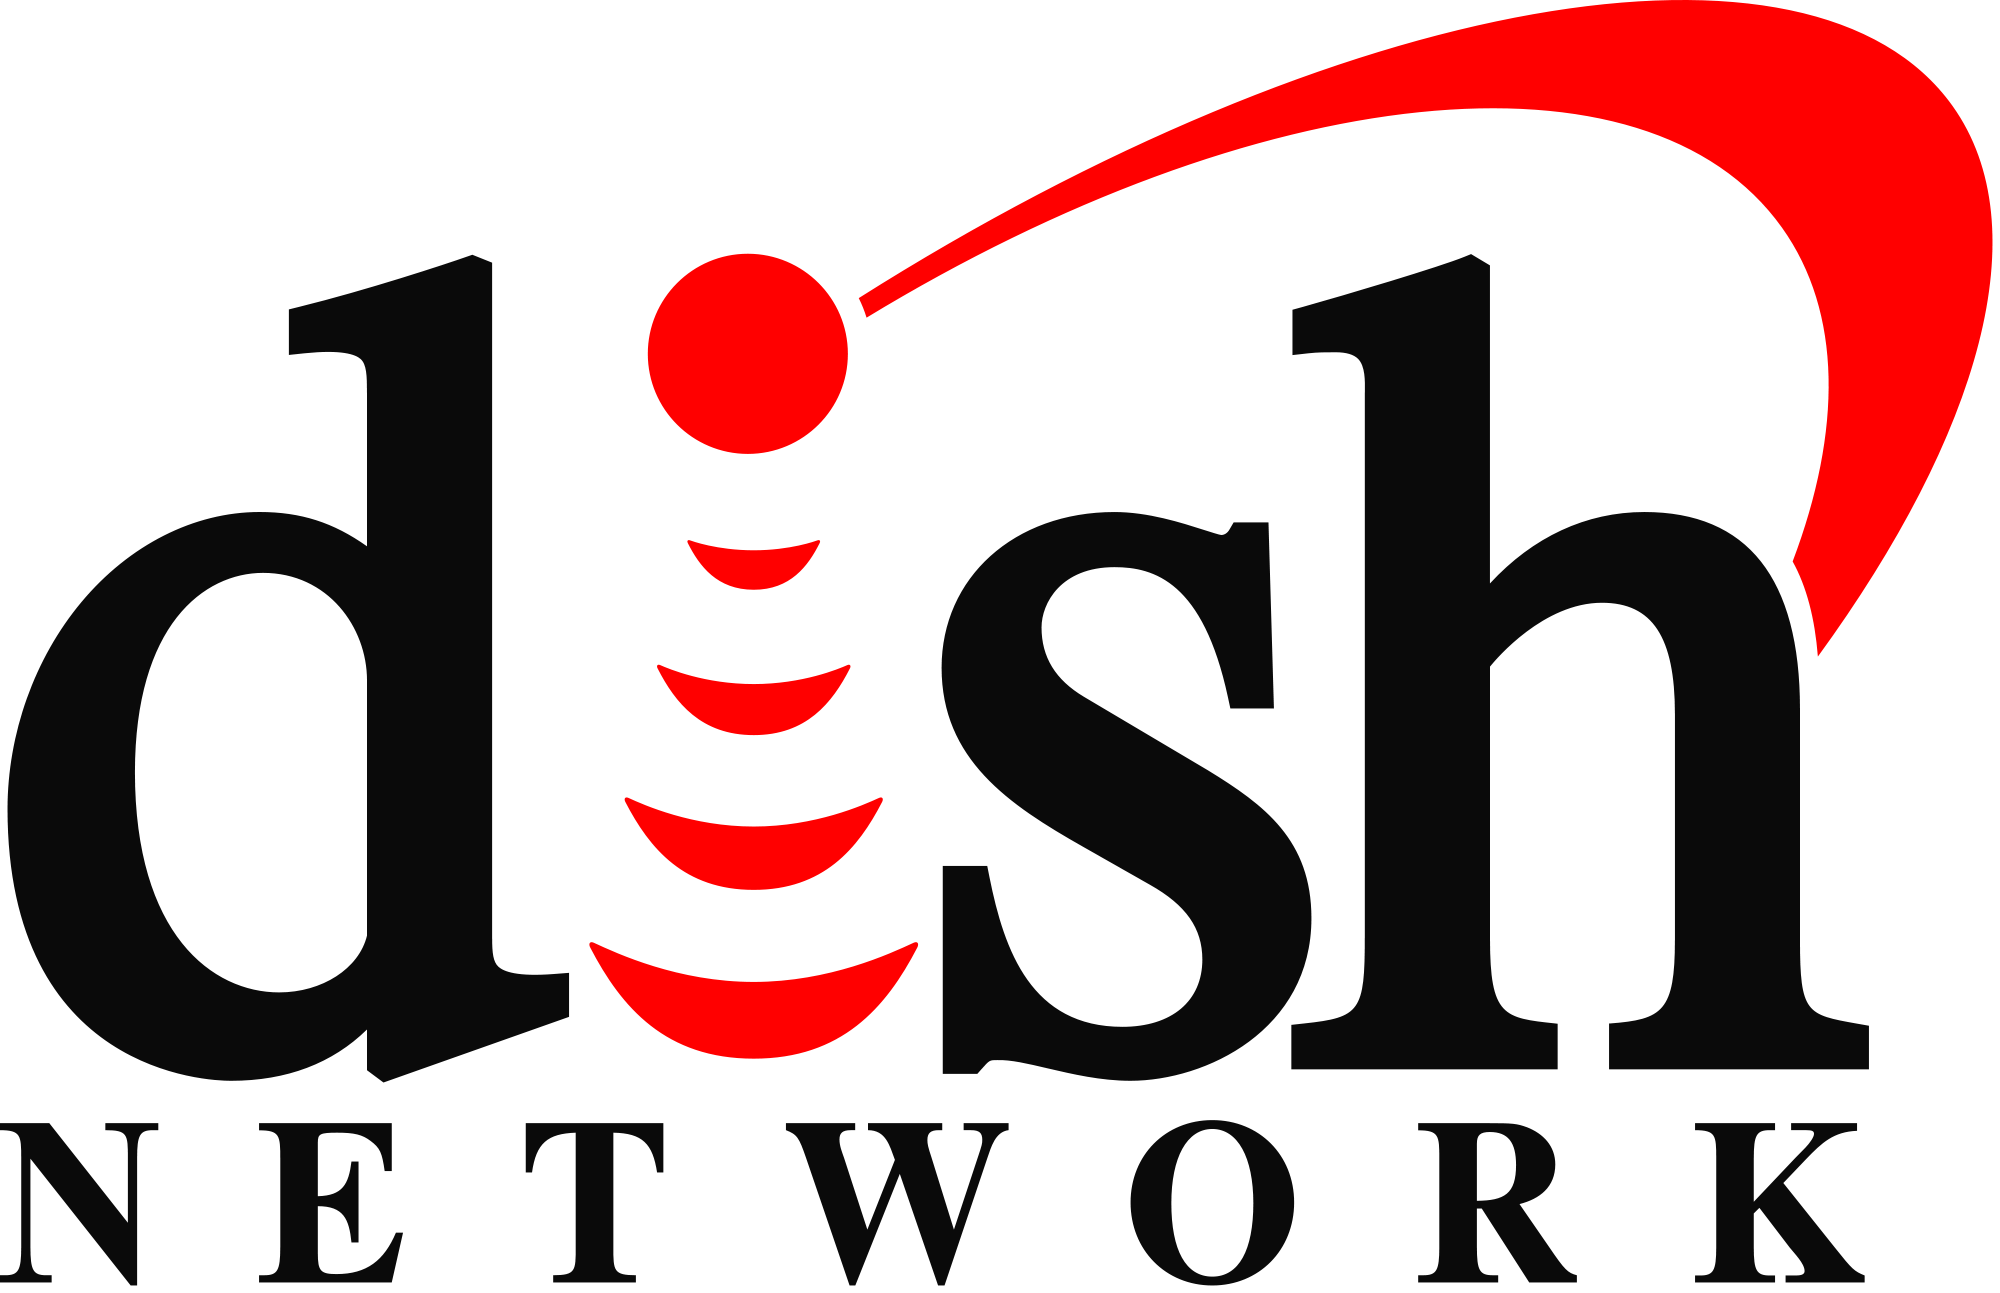 Dish Network (DISH) Reaches New 52-Week High and Low at $32.24